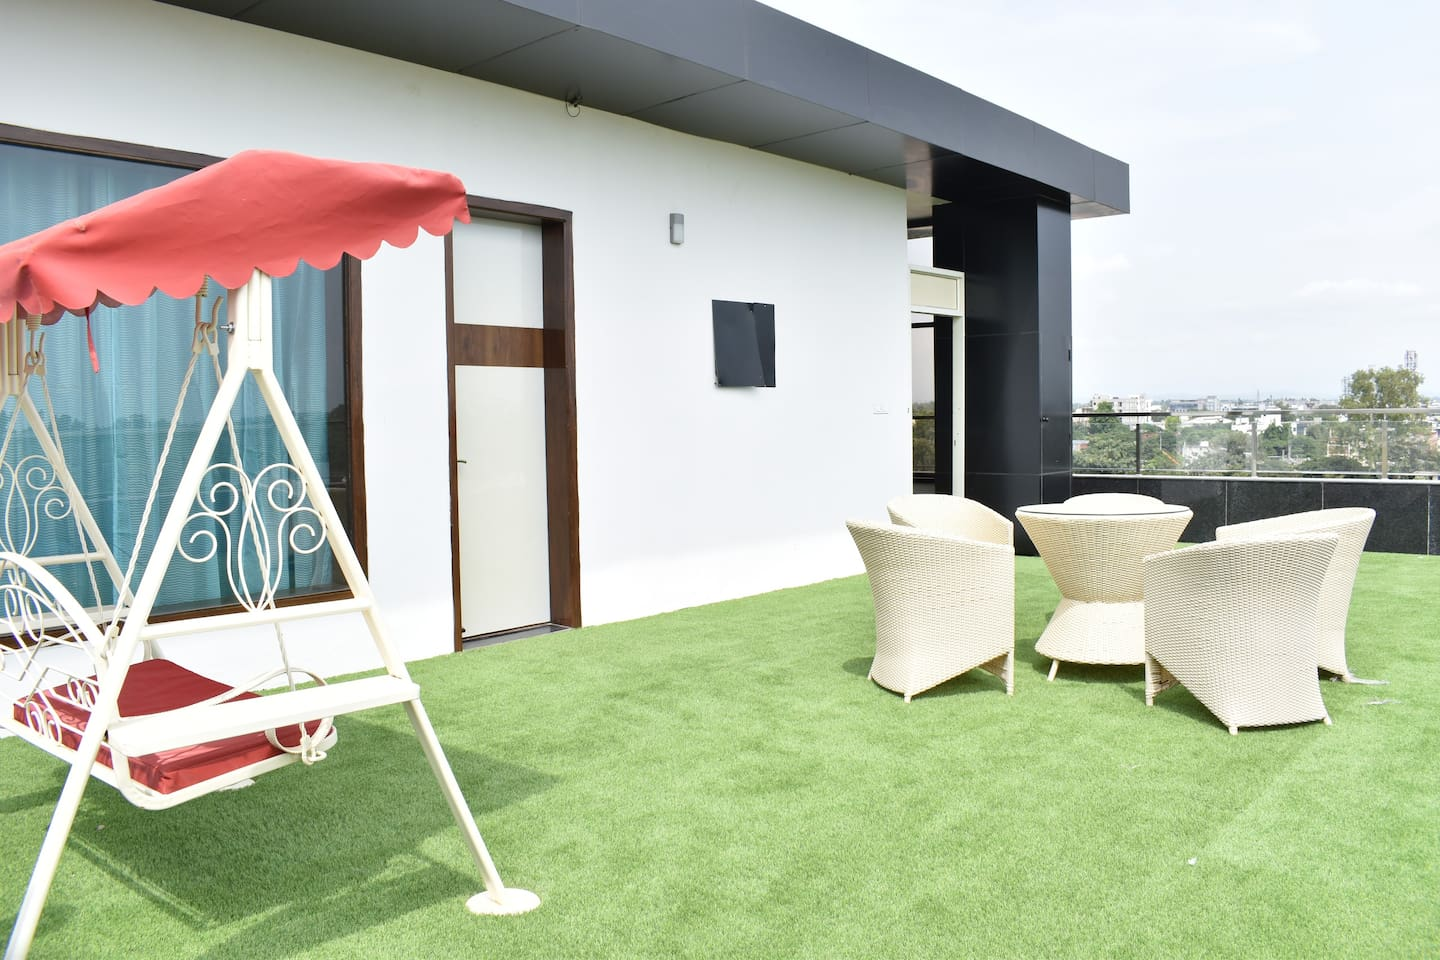 Front side lawn with sitting area and a Swing. It gives great experience in the morning and evening hours and you can see the hills as well when the weather is clear.